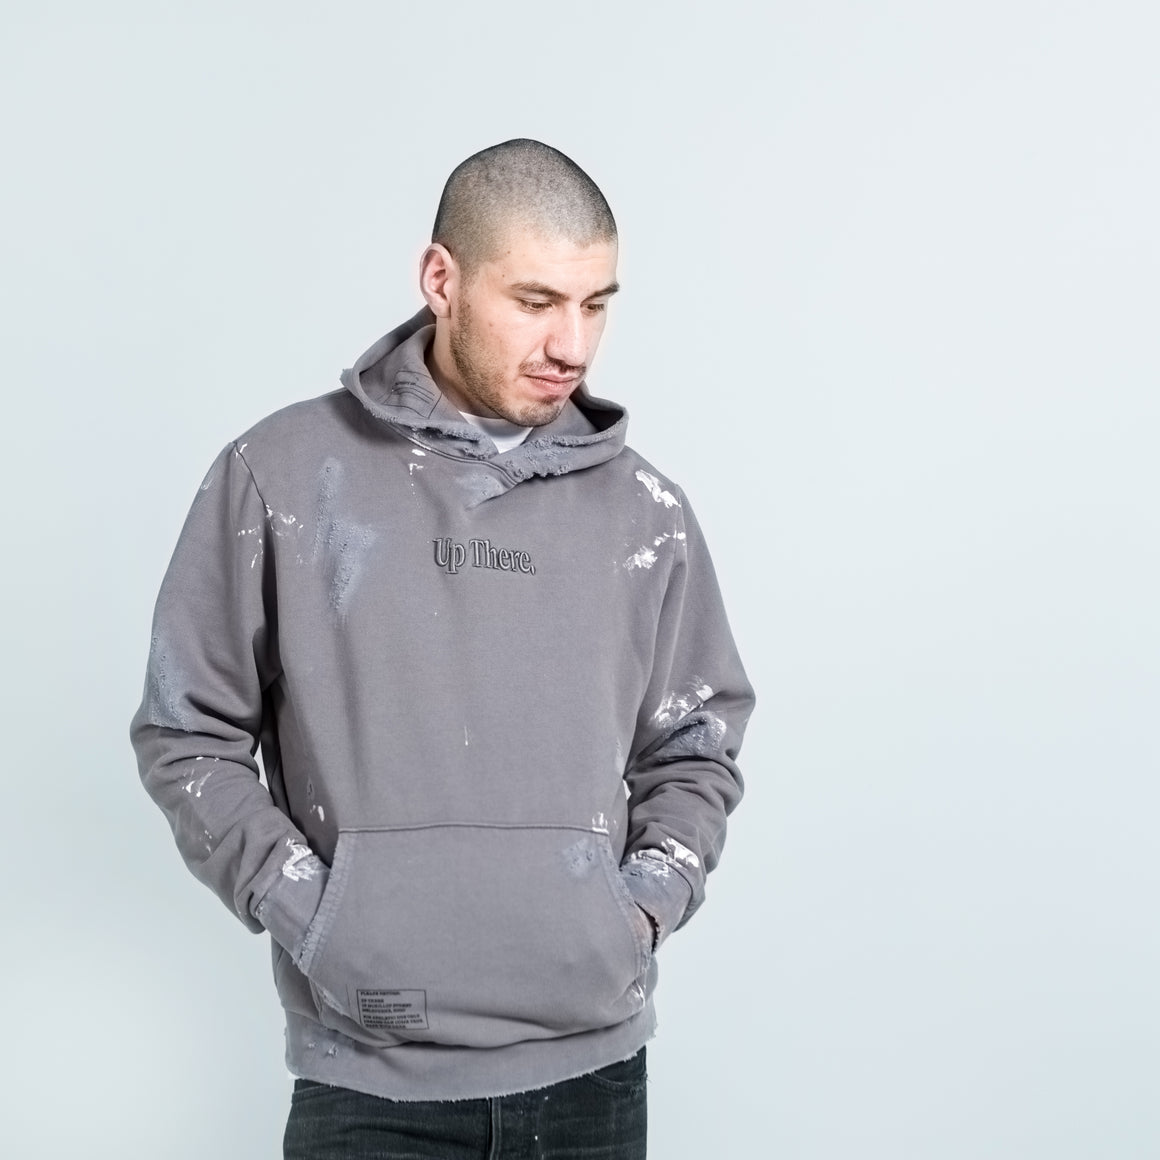 Up There - Heavyweight Pullover Hoodie Remake - Grey - Up There